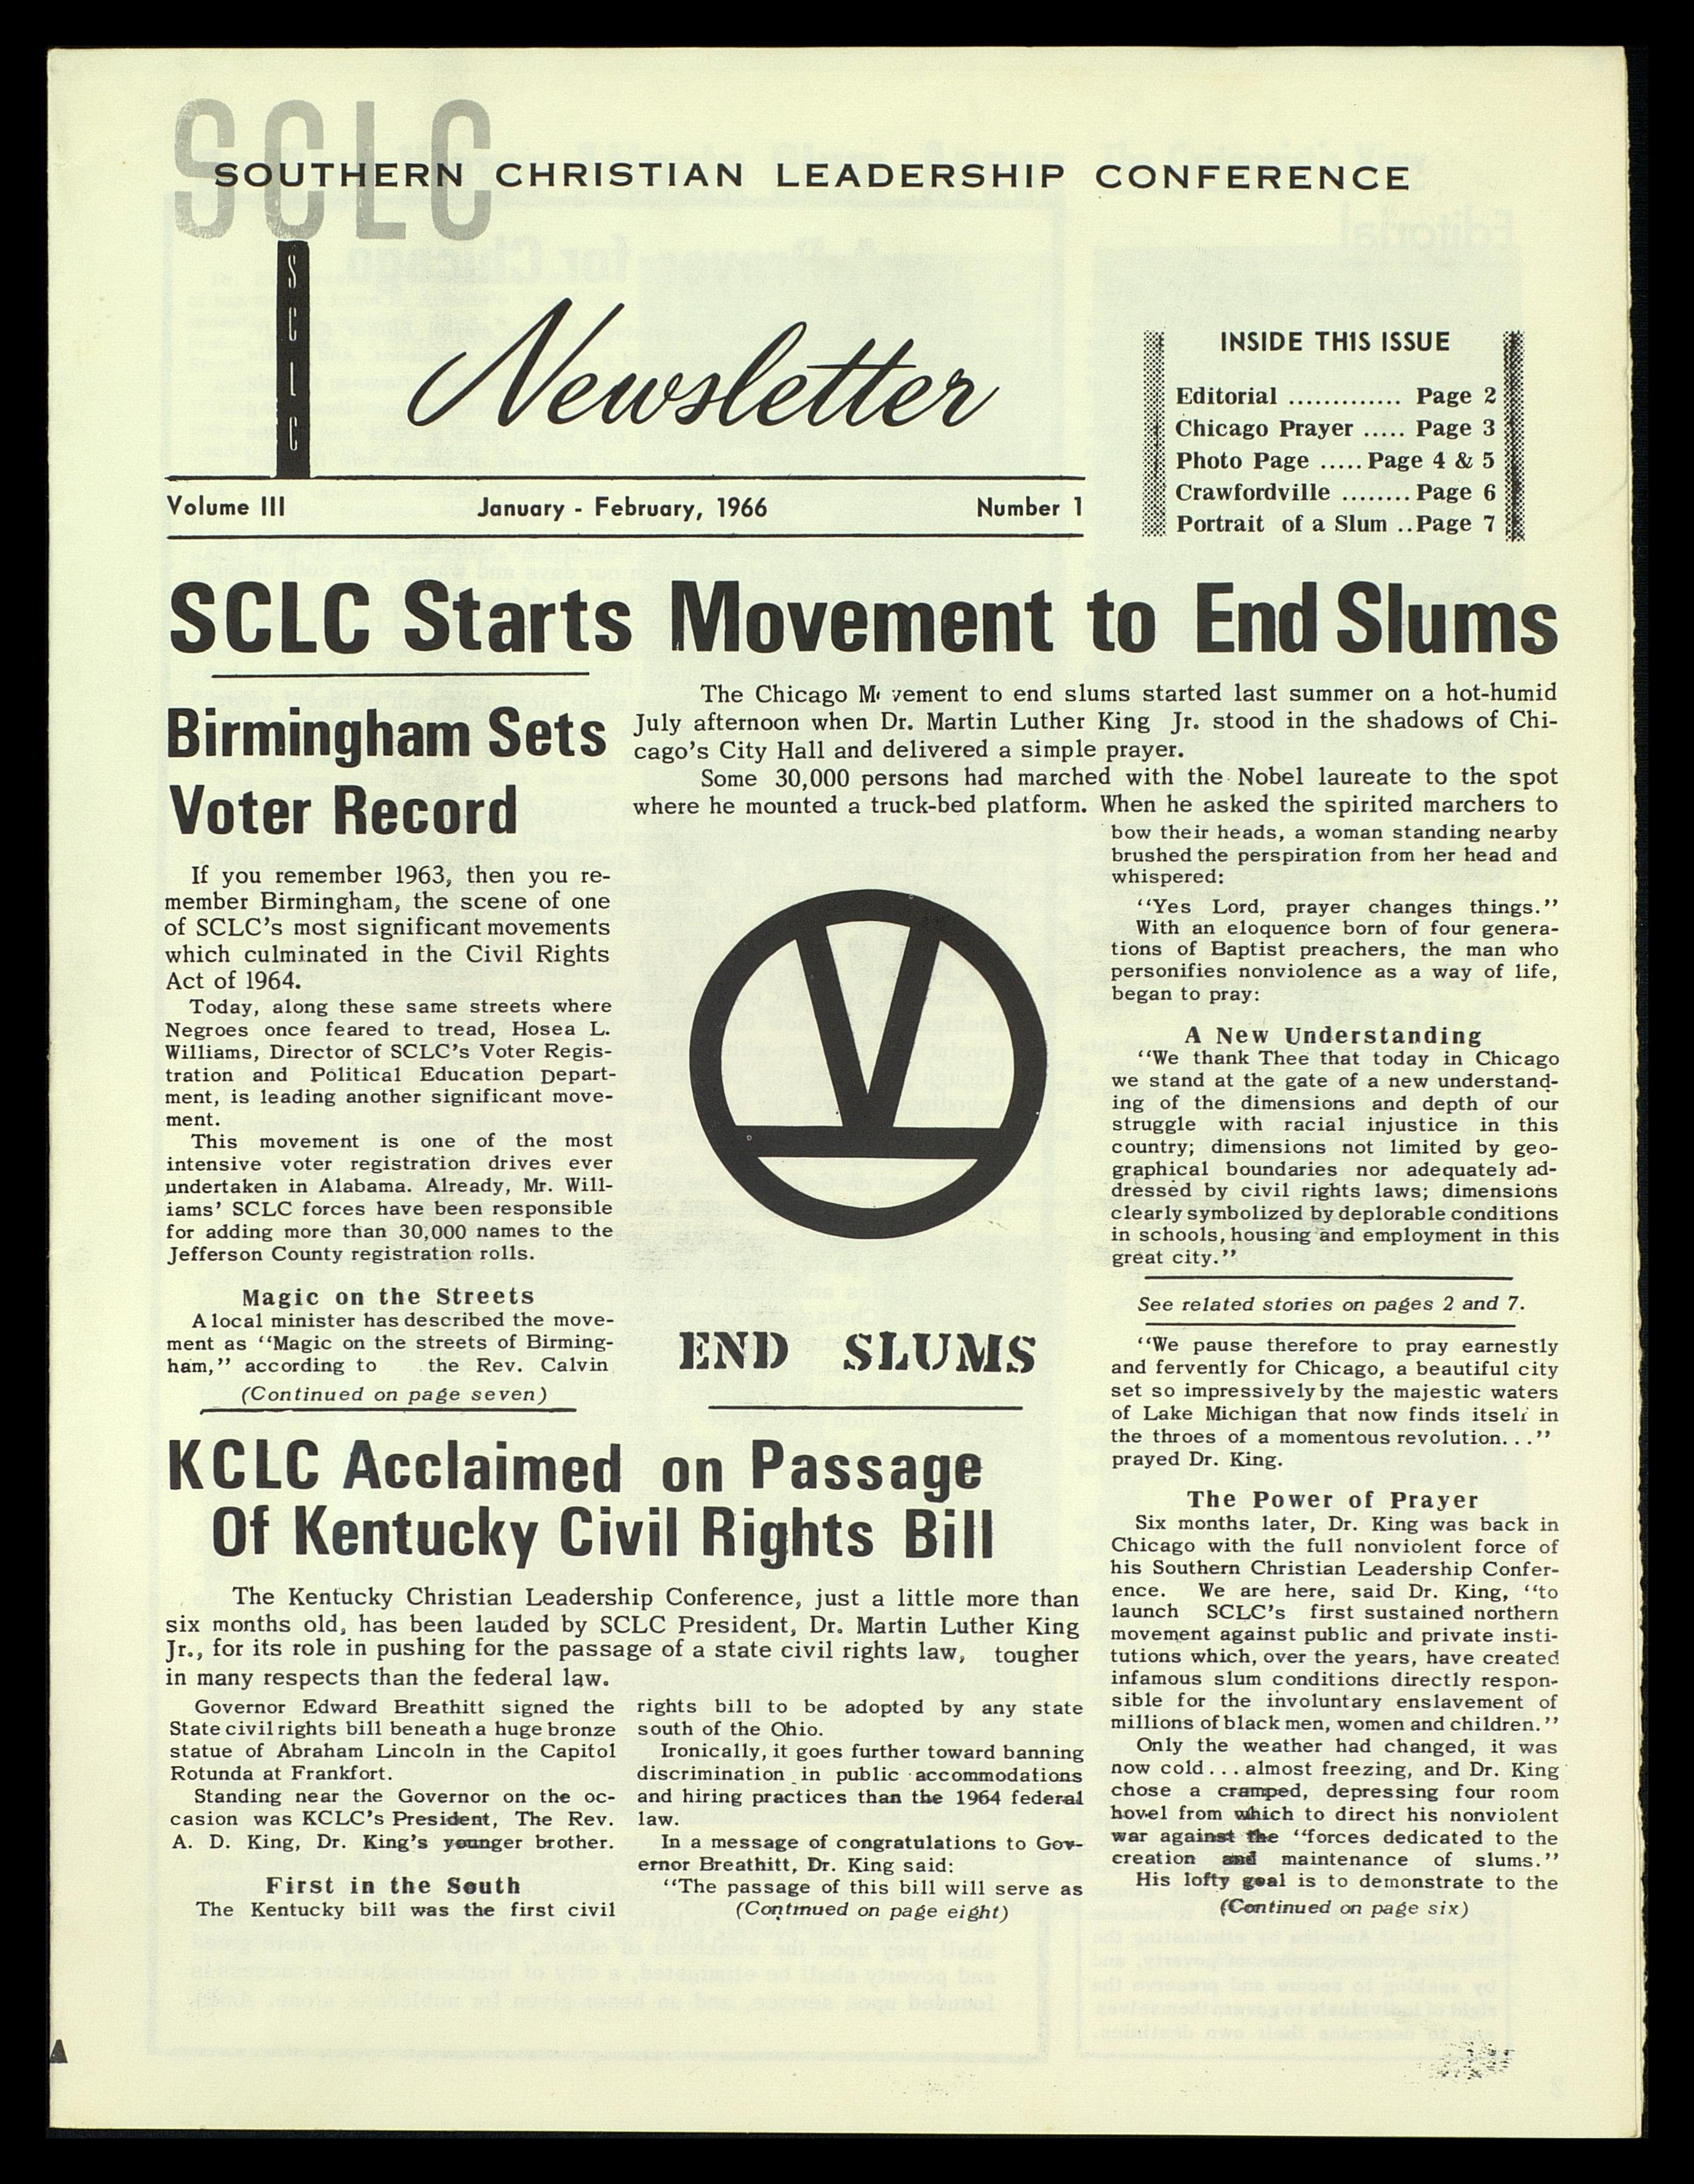 This January 7, 1966 SCLC Newsletter announces the start of the Chicago Freedom Movement which was known at the time as a campaign to end slums.